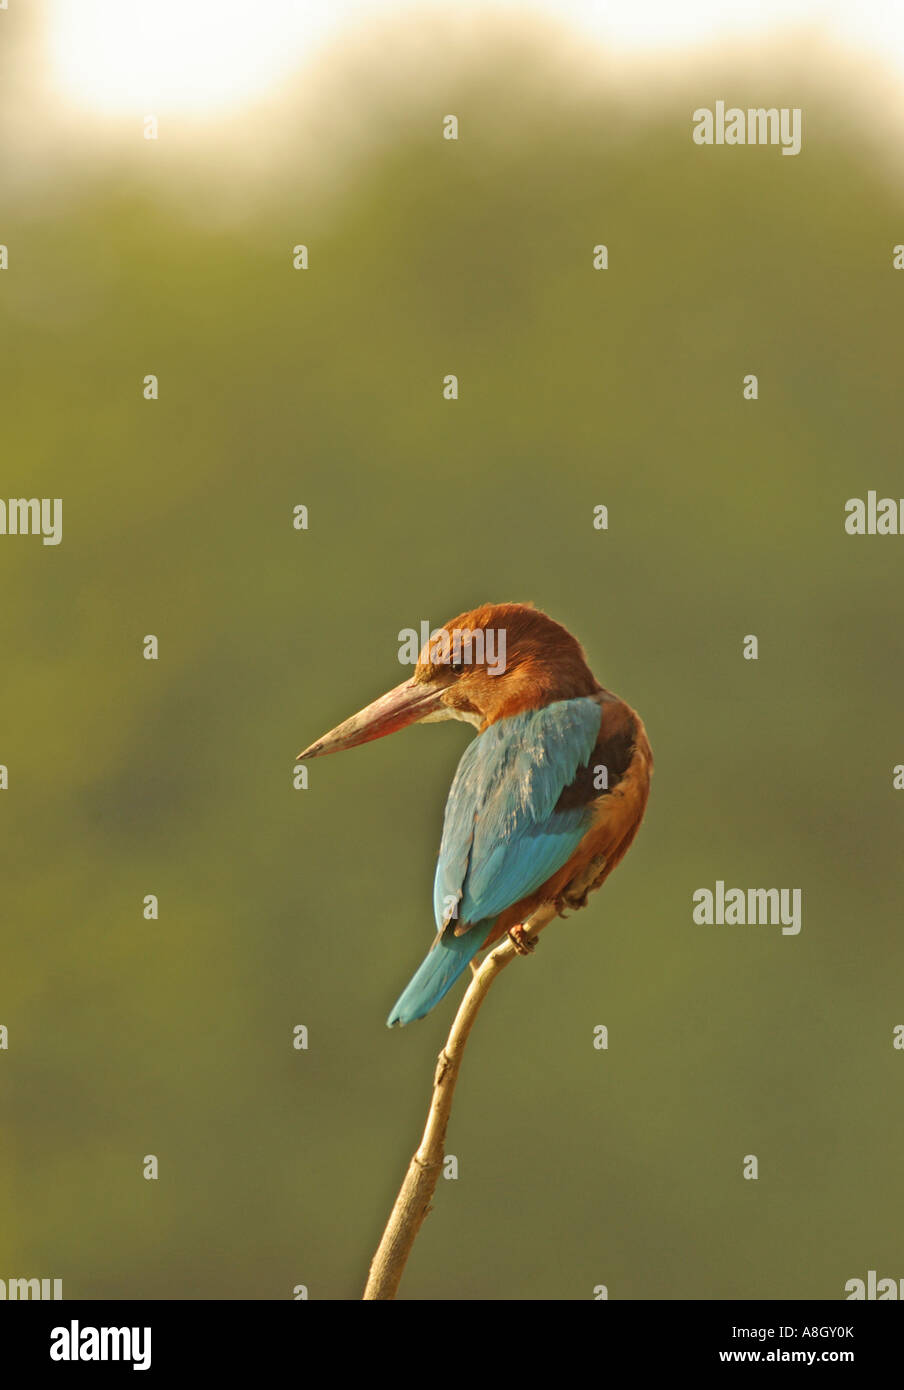 White throated kingfisher, Halcyon smyrnensis - Stock Image